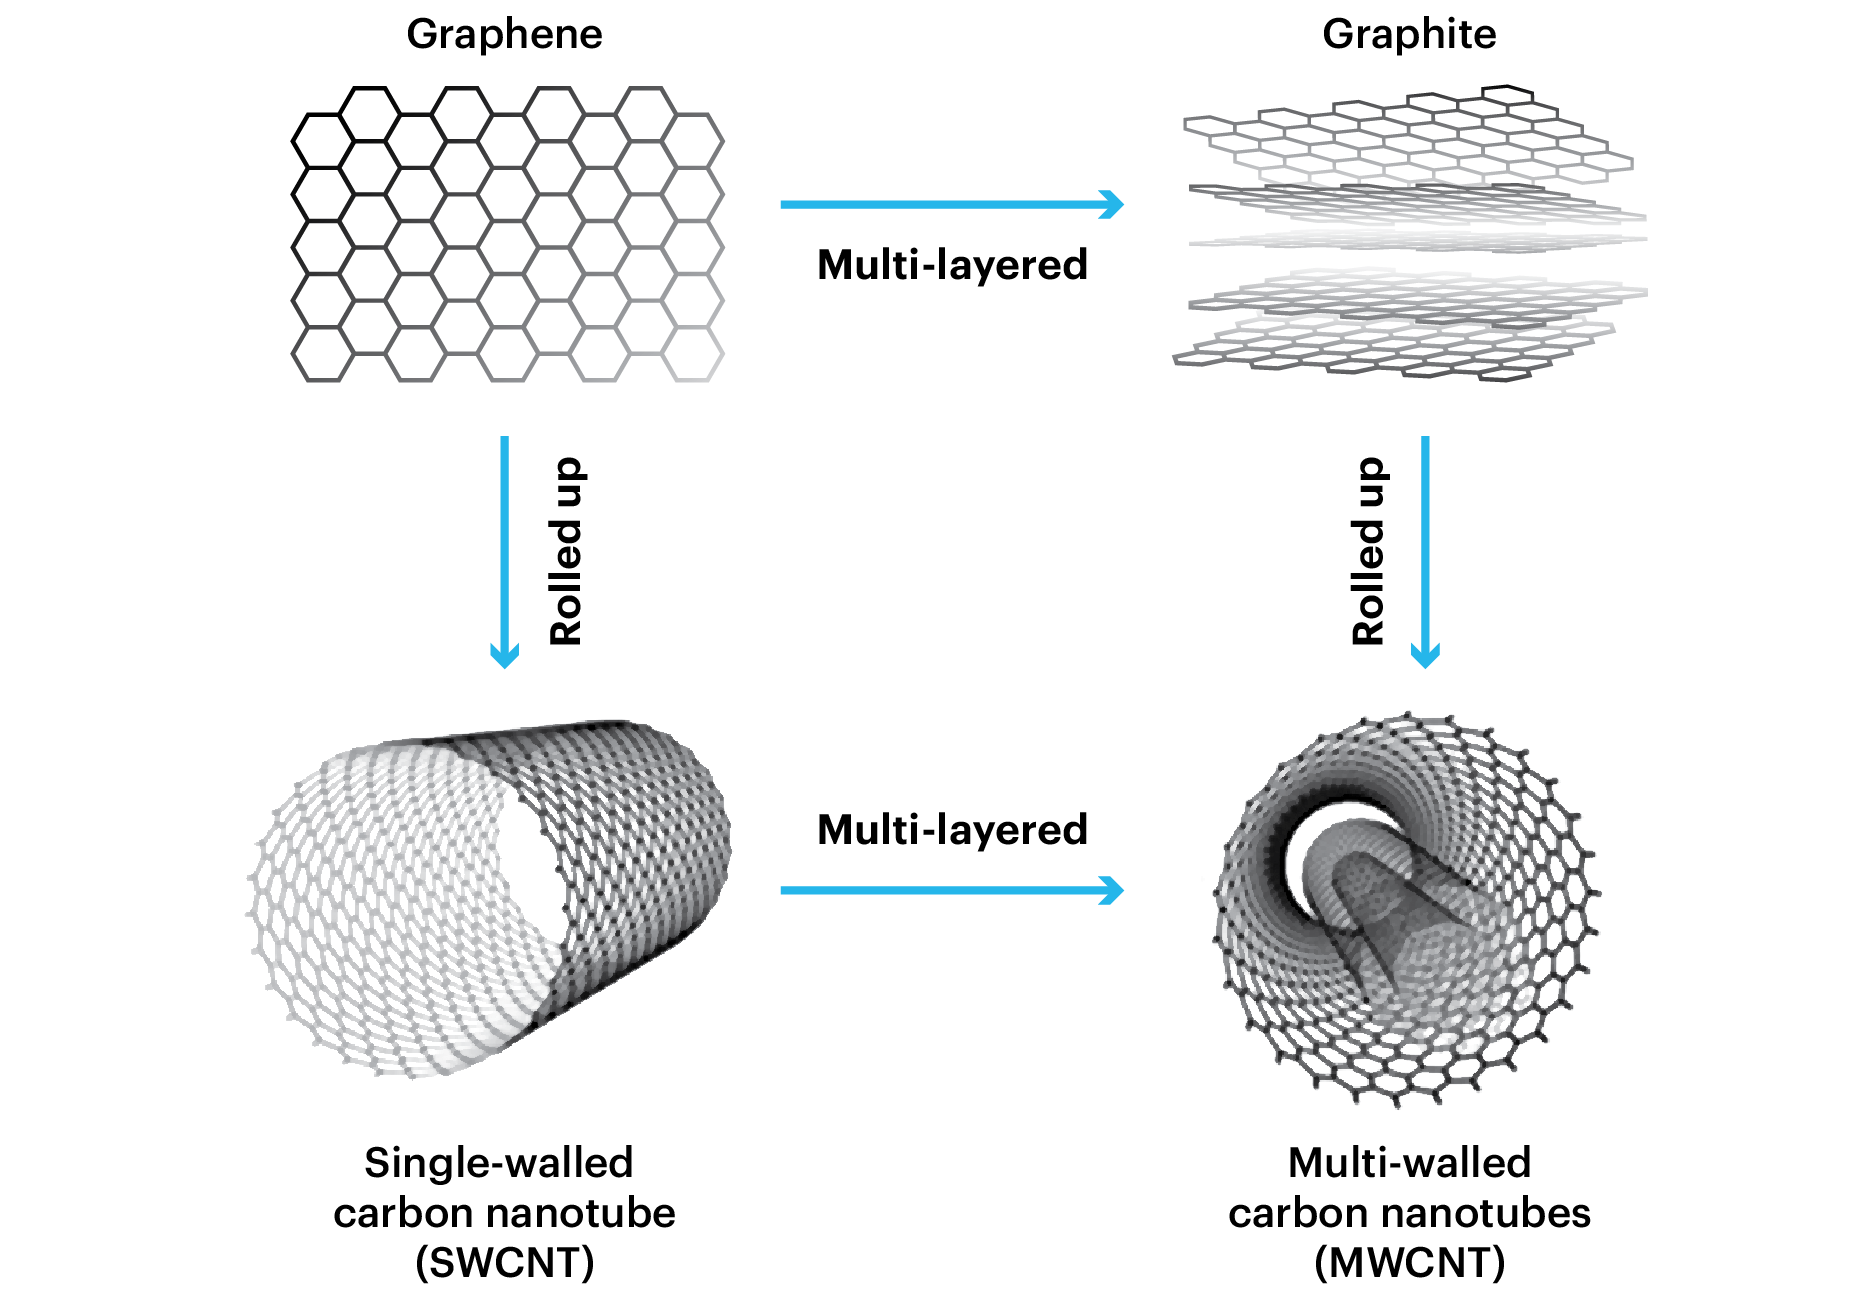 differences between single-walled and multi-walled carbon nanotubes